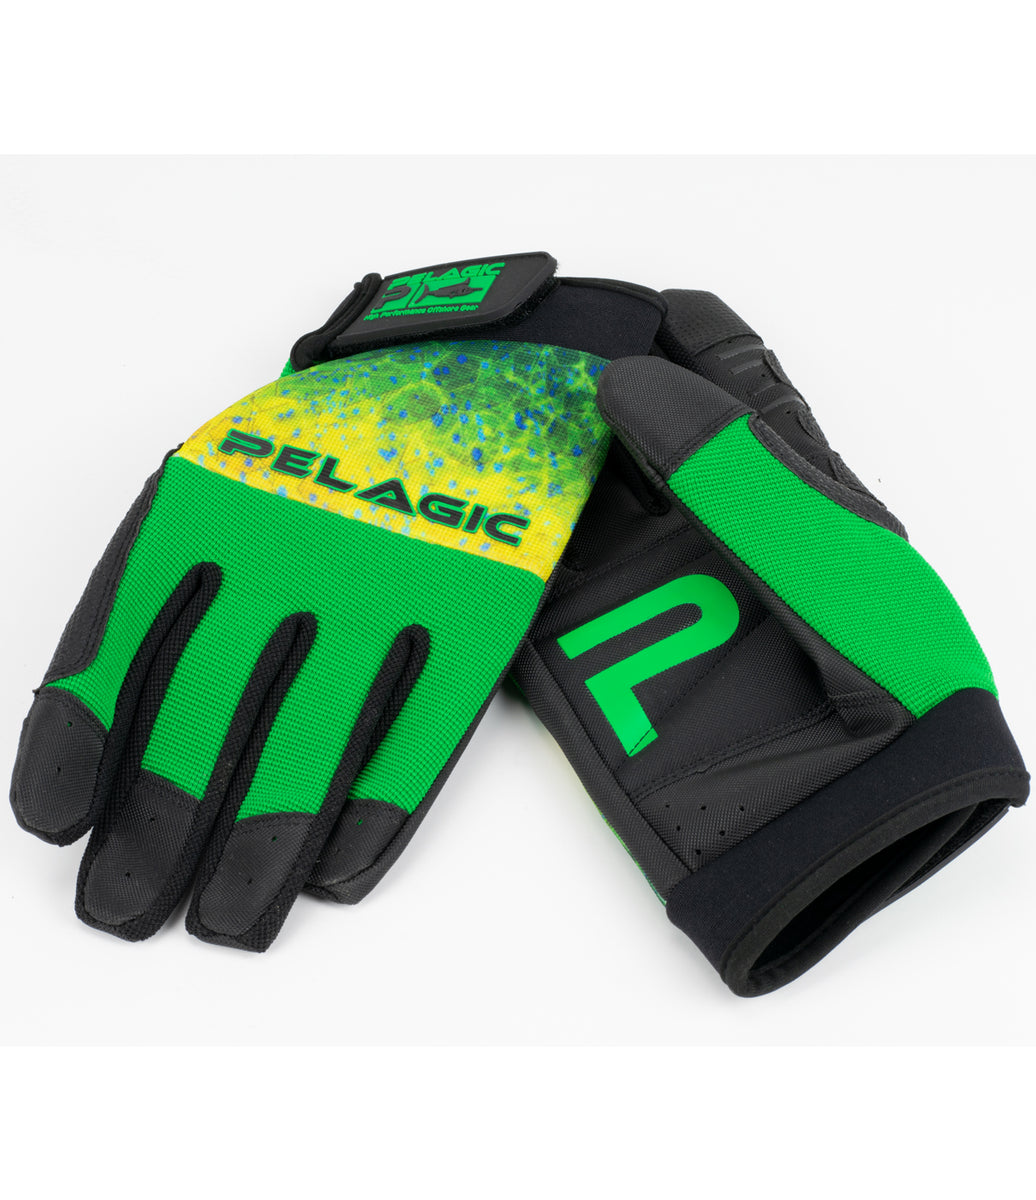 End Game Pro Gloves Big Image - 7